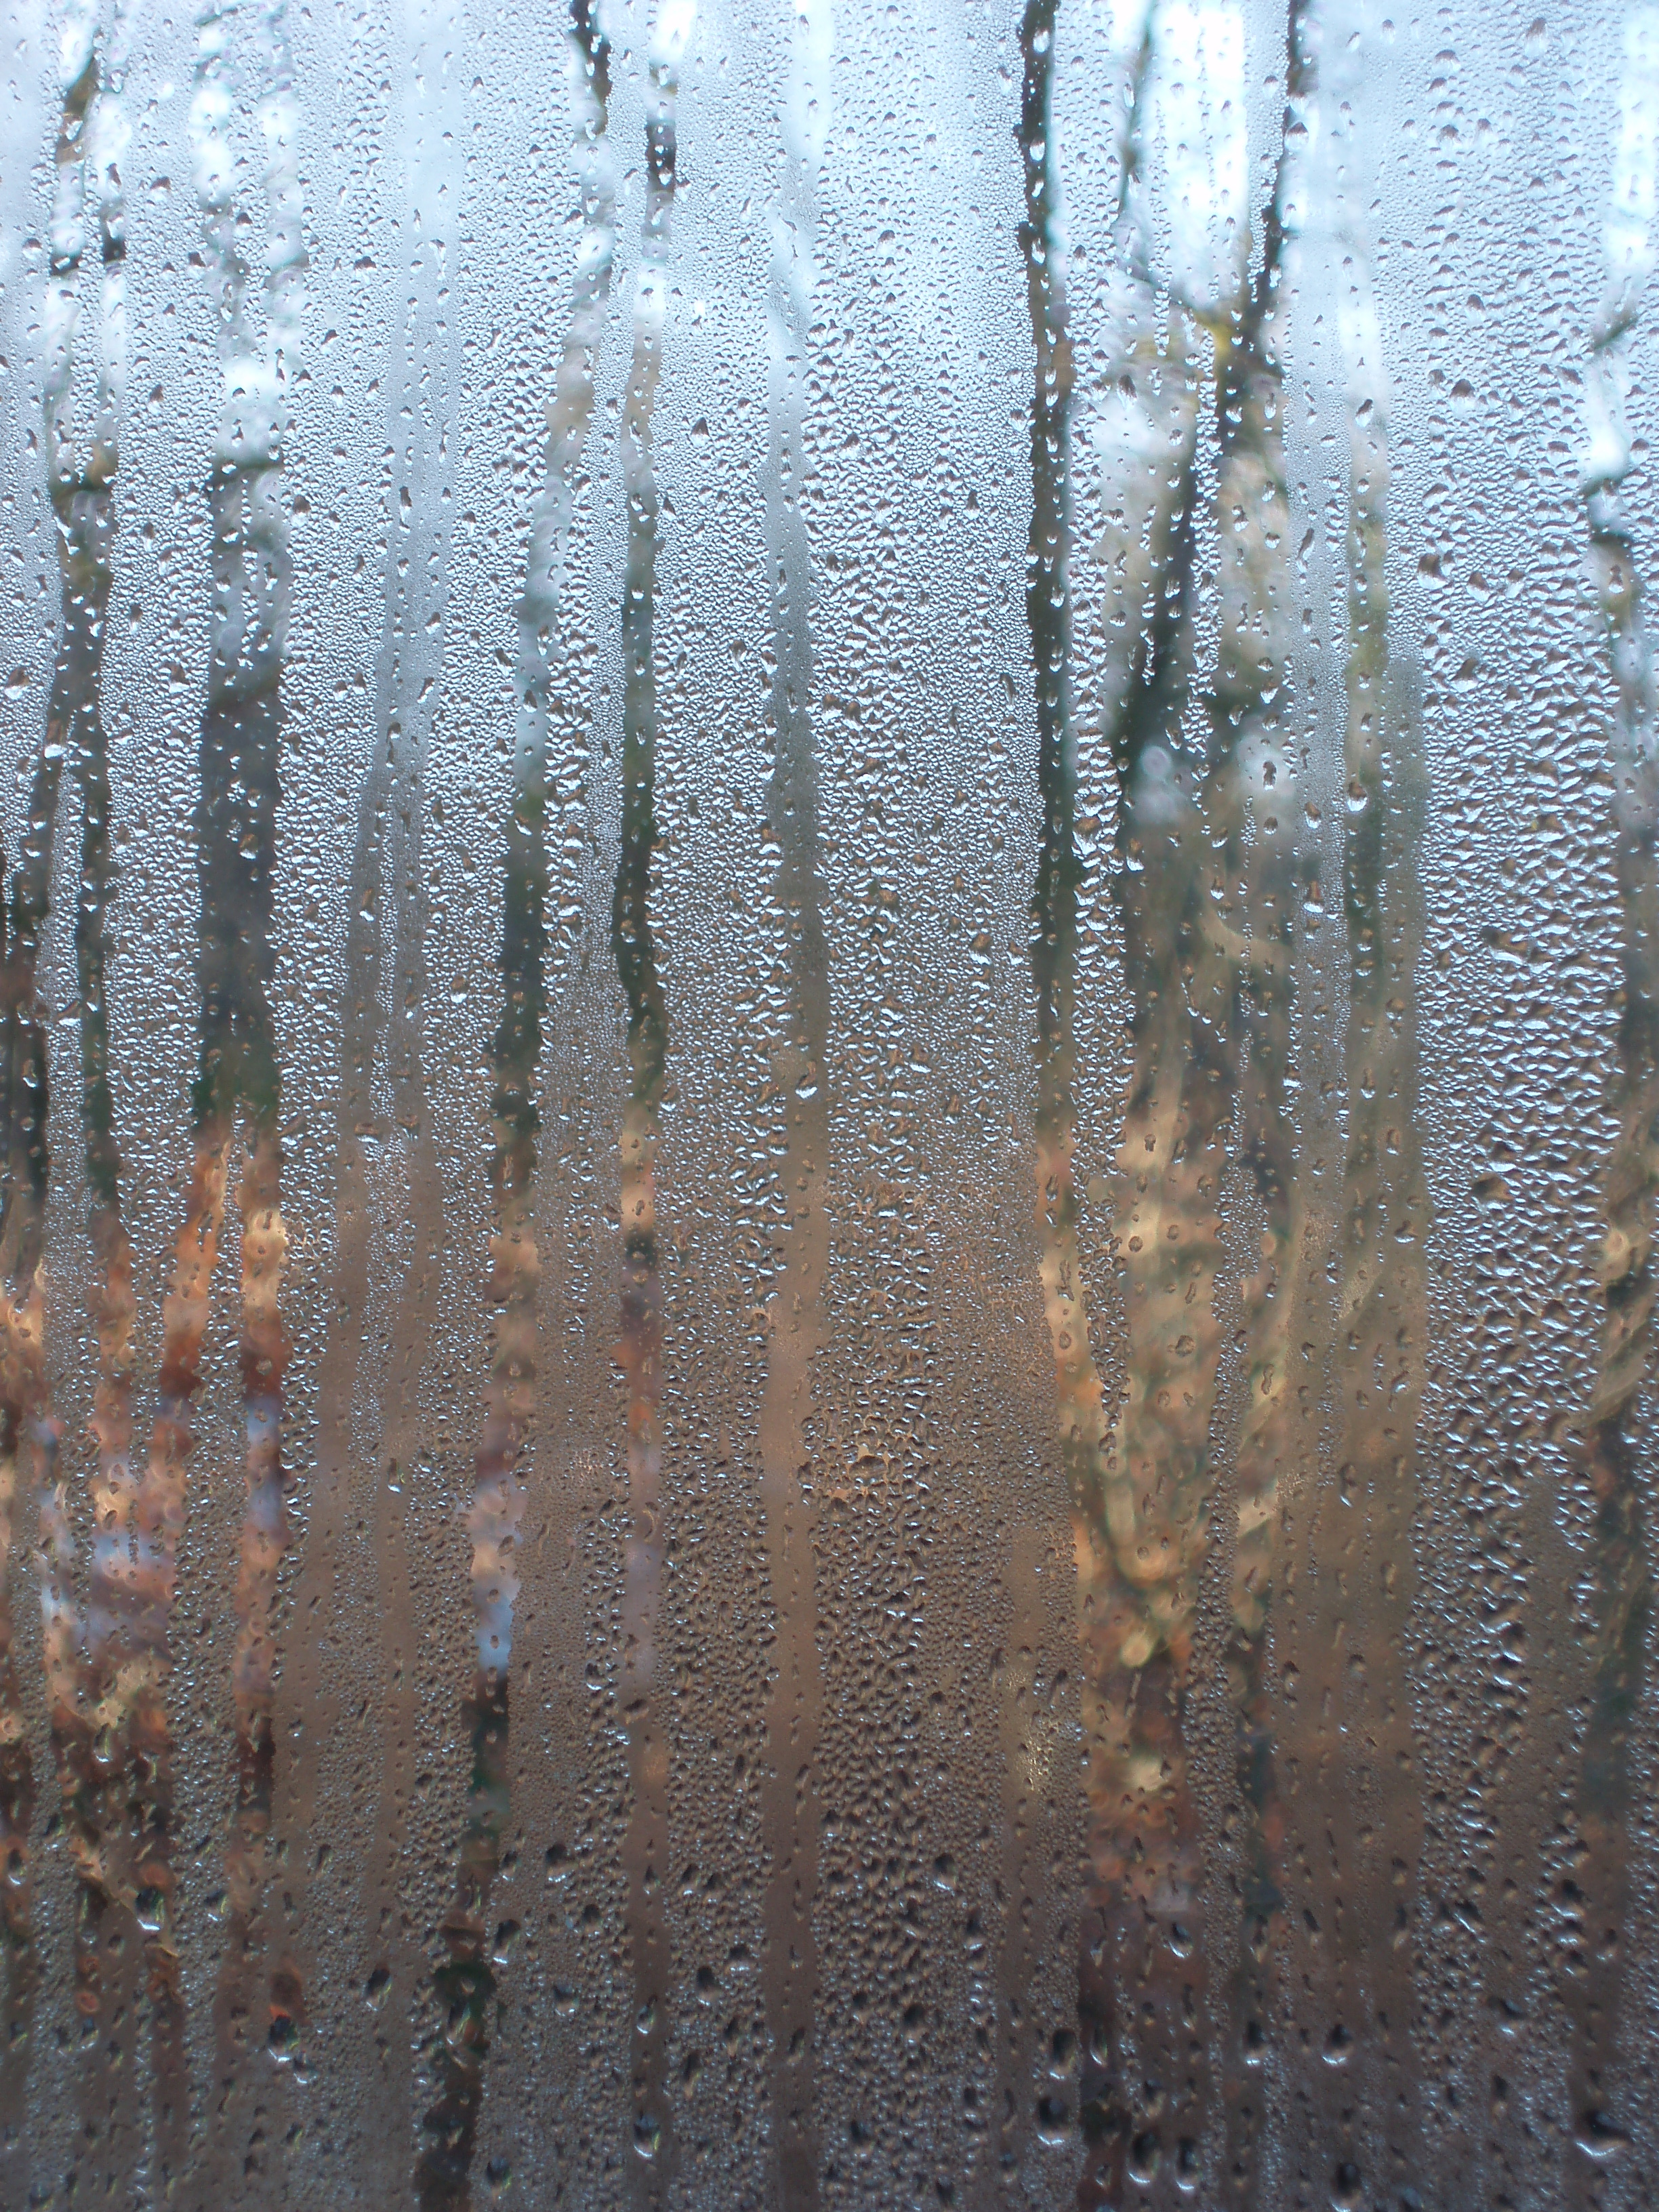 download steamy windows, drops of water running down a pane